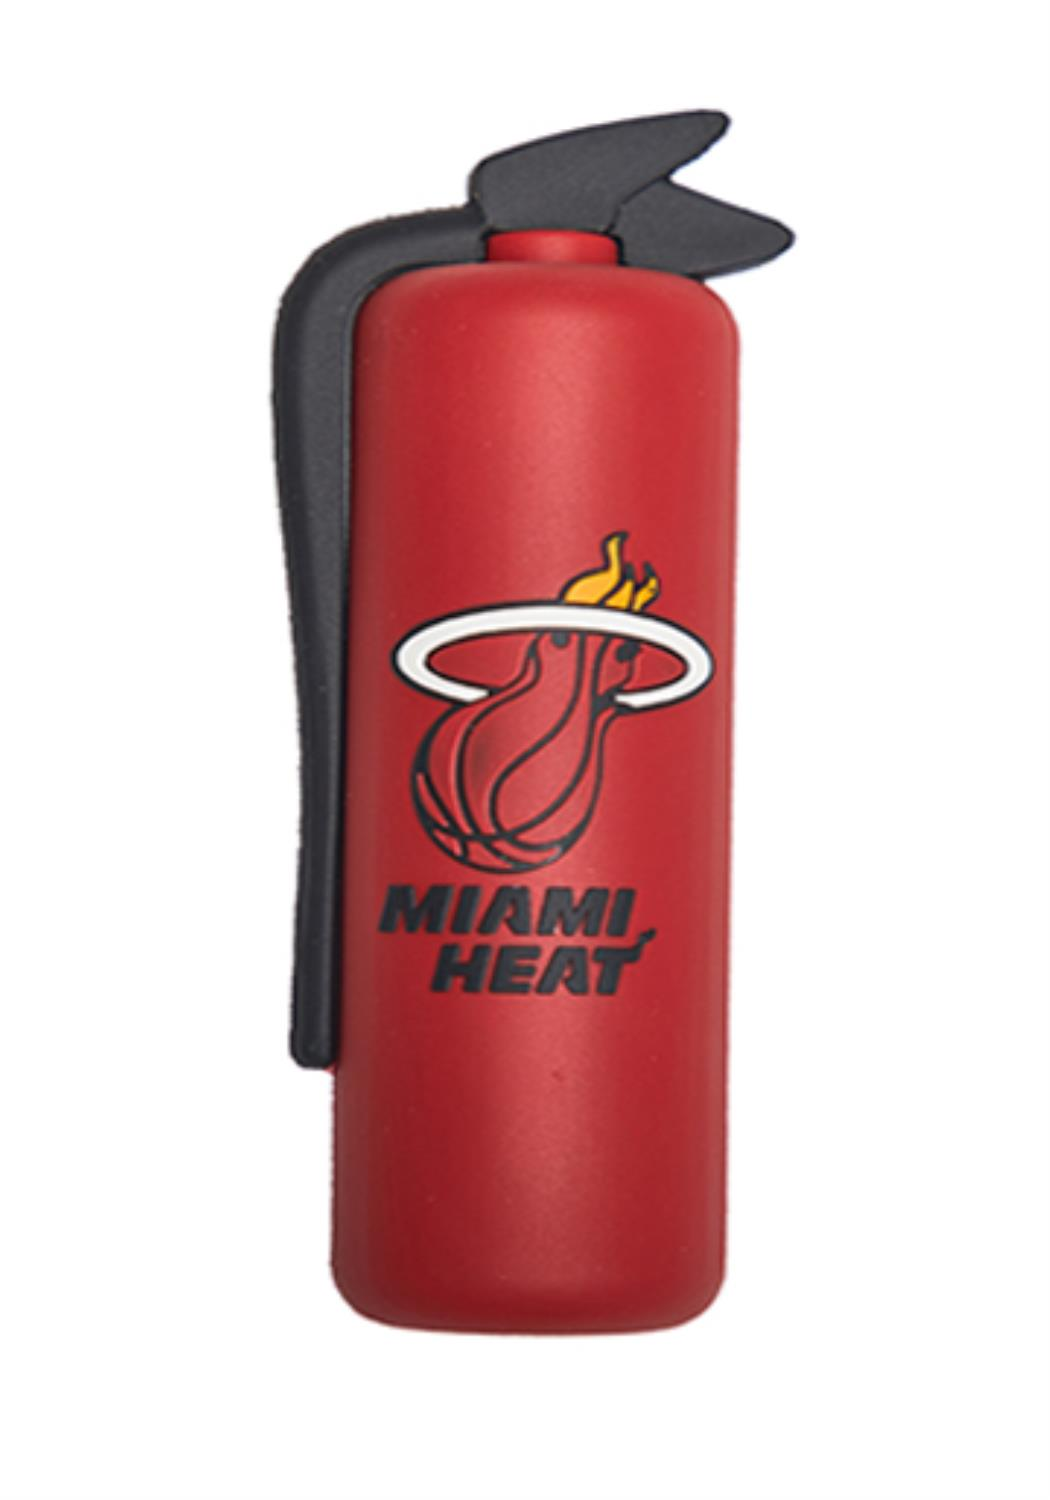 Miami Heat- Extinguisher | OFFICIAL NBA LICENSED PHONE CHARGER